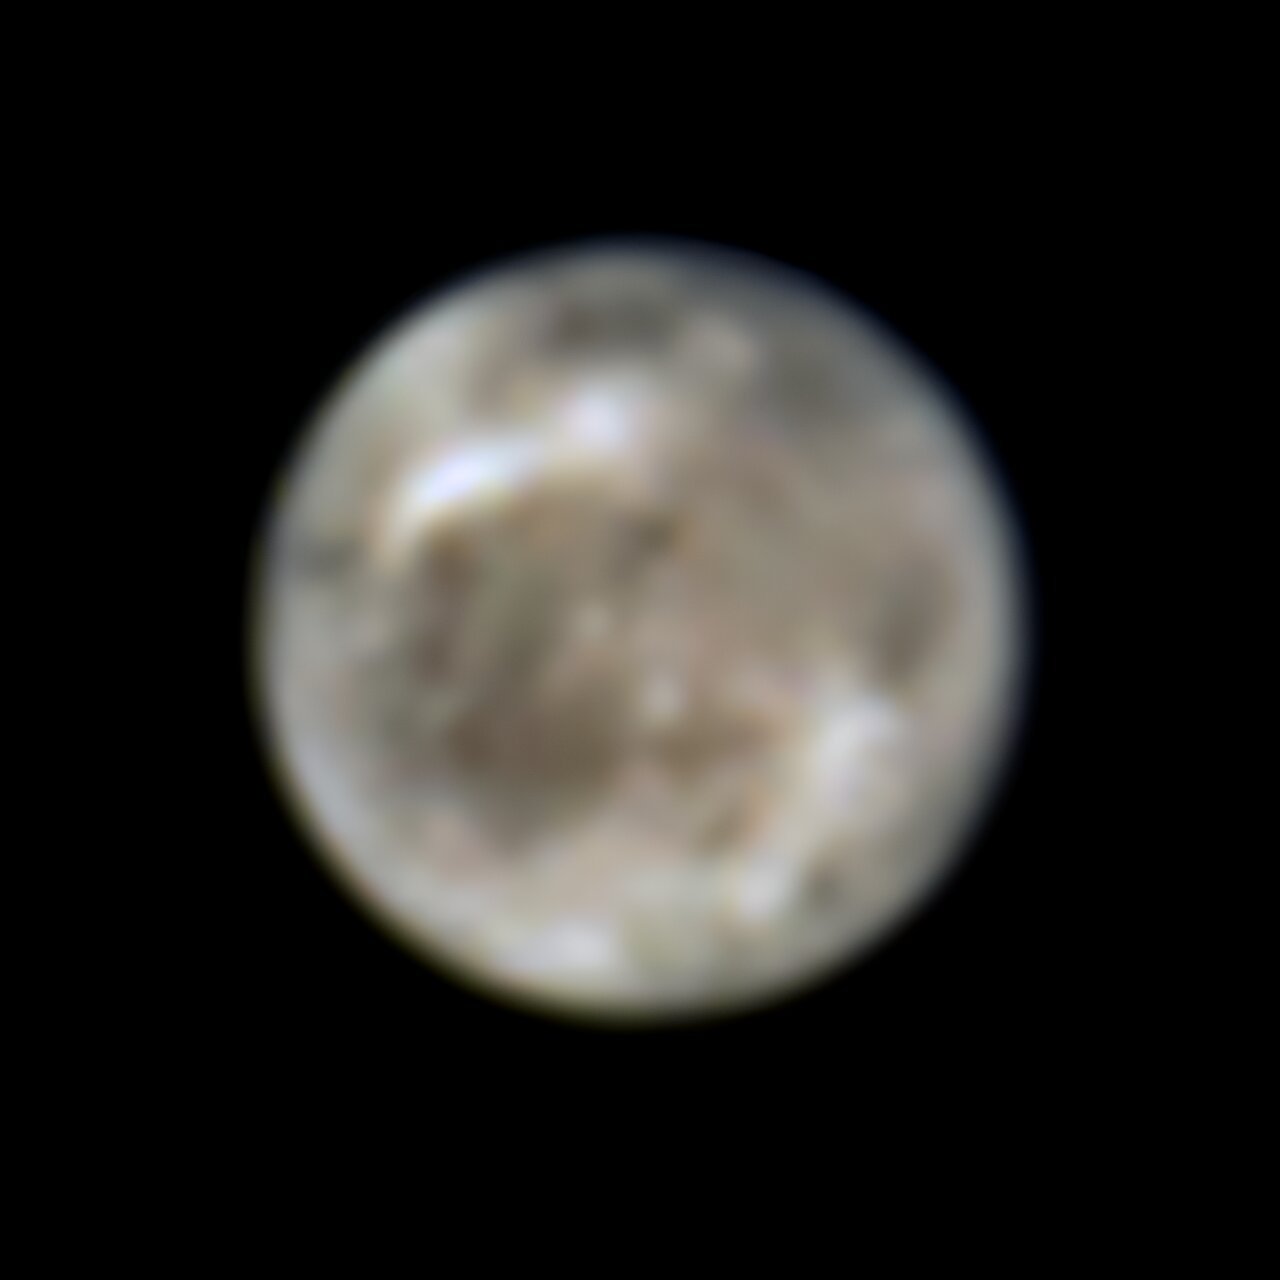 Hubble Finds First Evidence of Water Vapour at Jupiter's Moon Ganymede